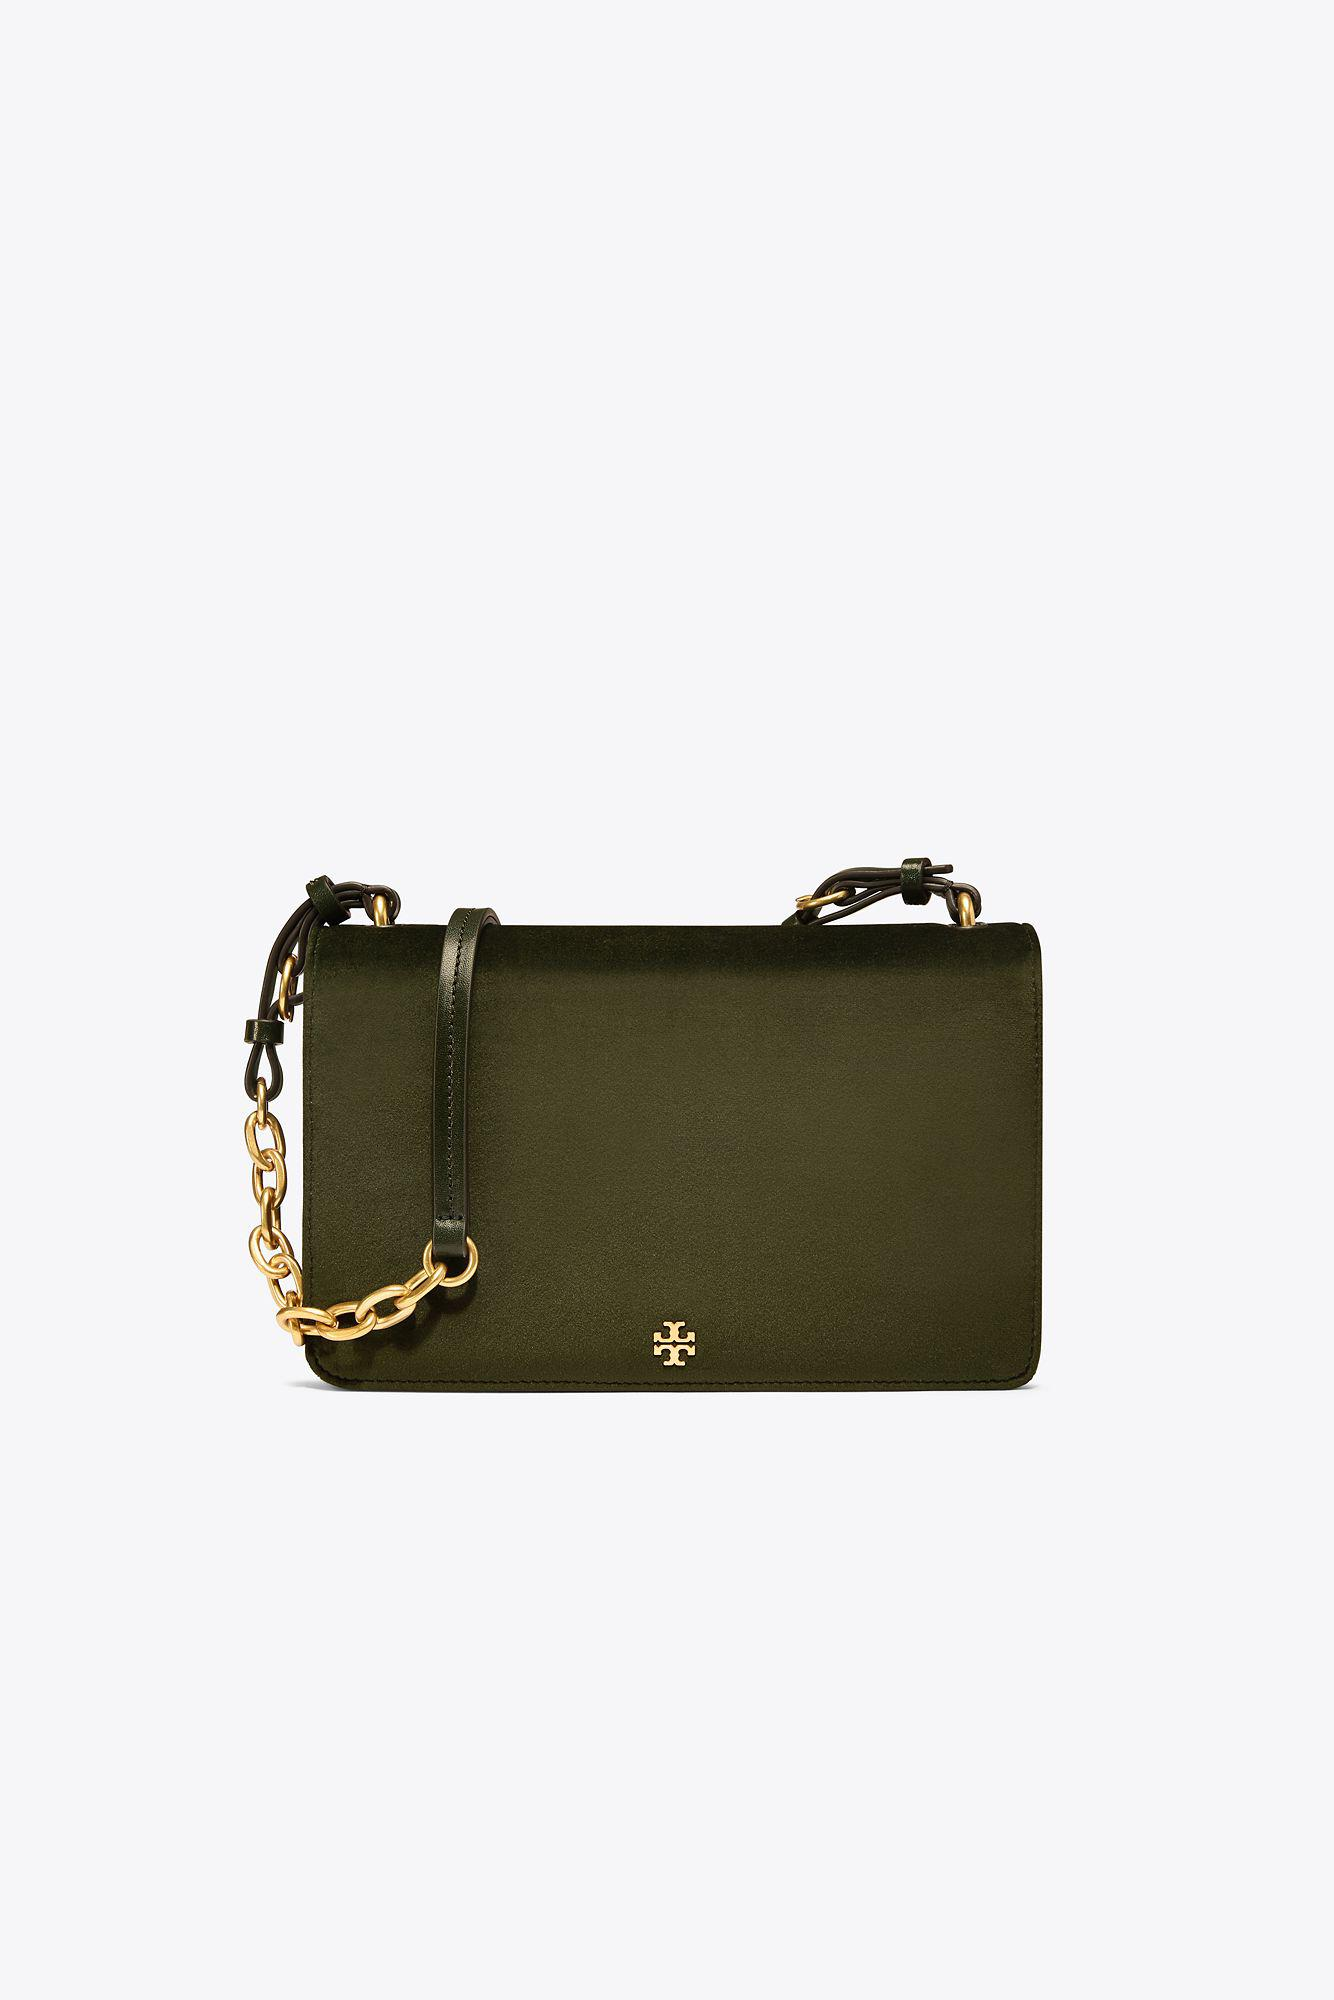 4764fe7fc7e Lyst - Tory Burch Sadie Velvet Shoulder Bag